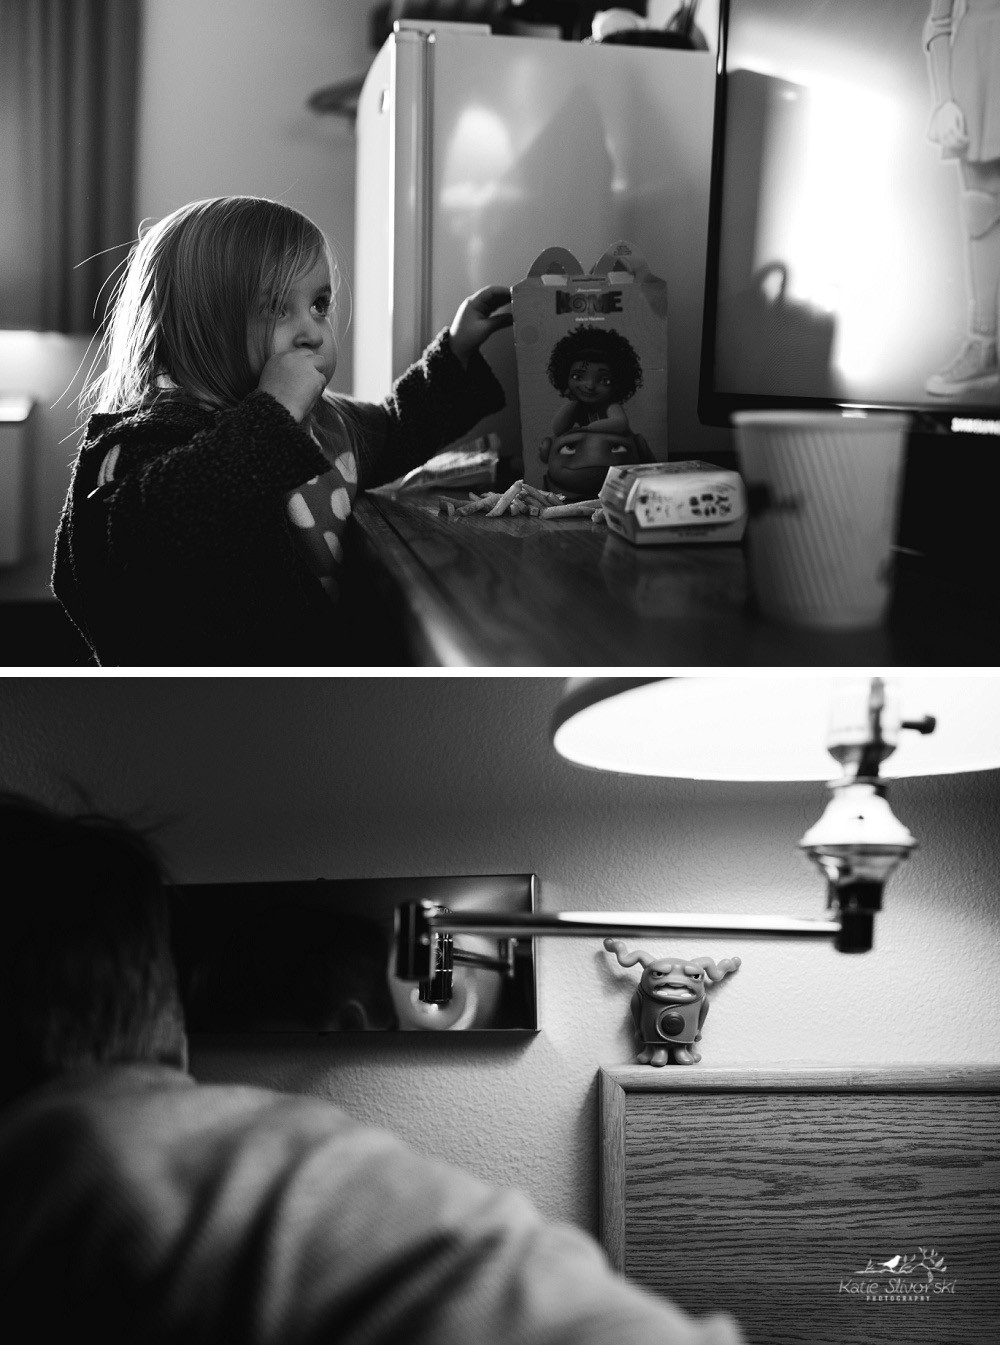 two photos of eating in a hotel and a McDonald's toy